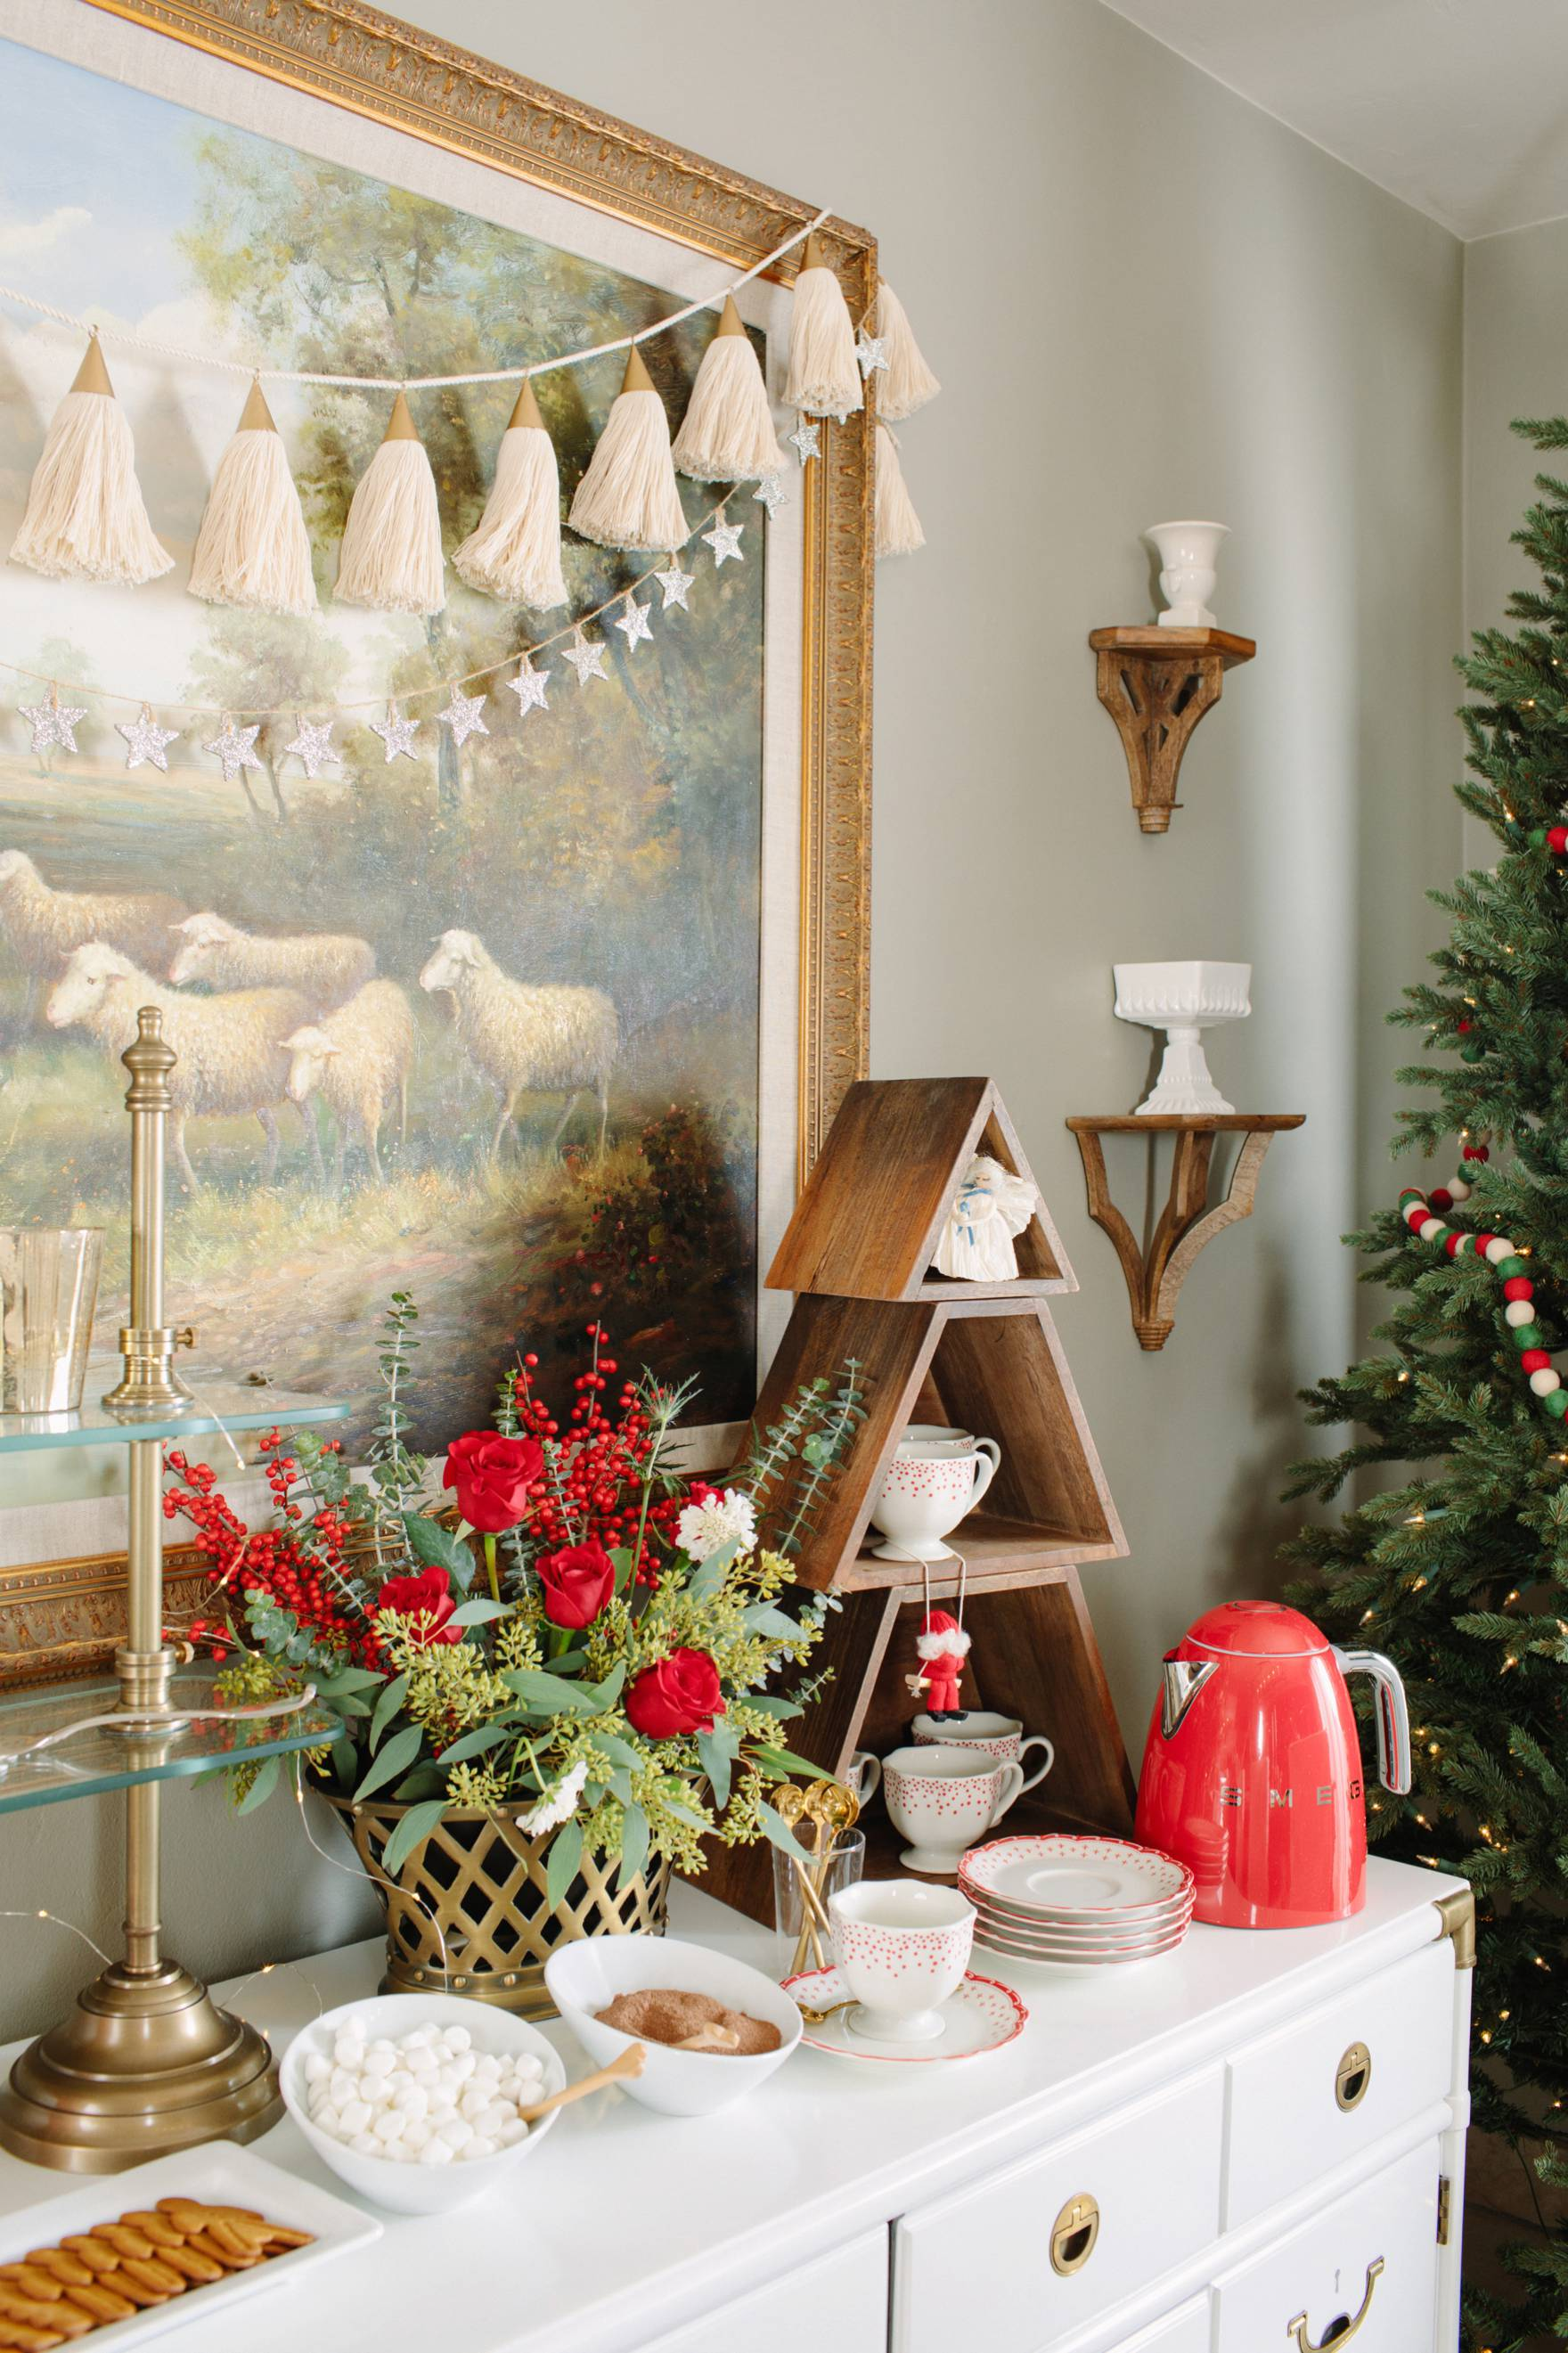 Christmas holiday tables cape inspiration red green and white Ballard Designs with blogger Diana Elizabeth cocoa bar